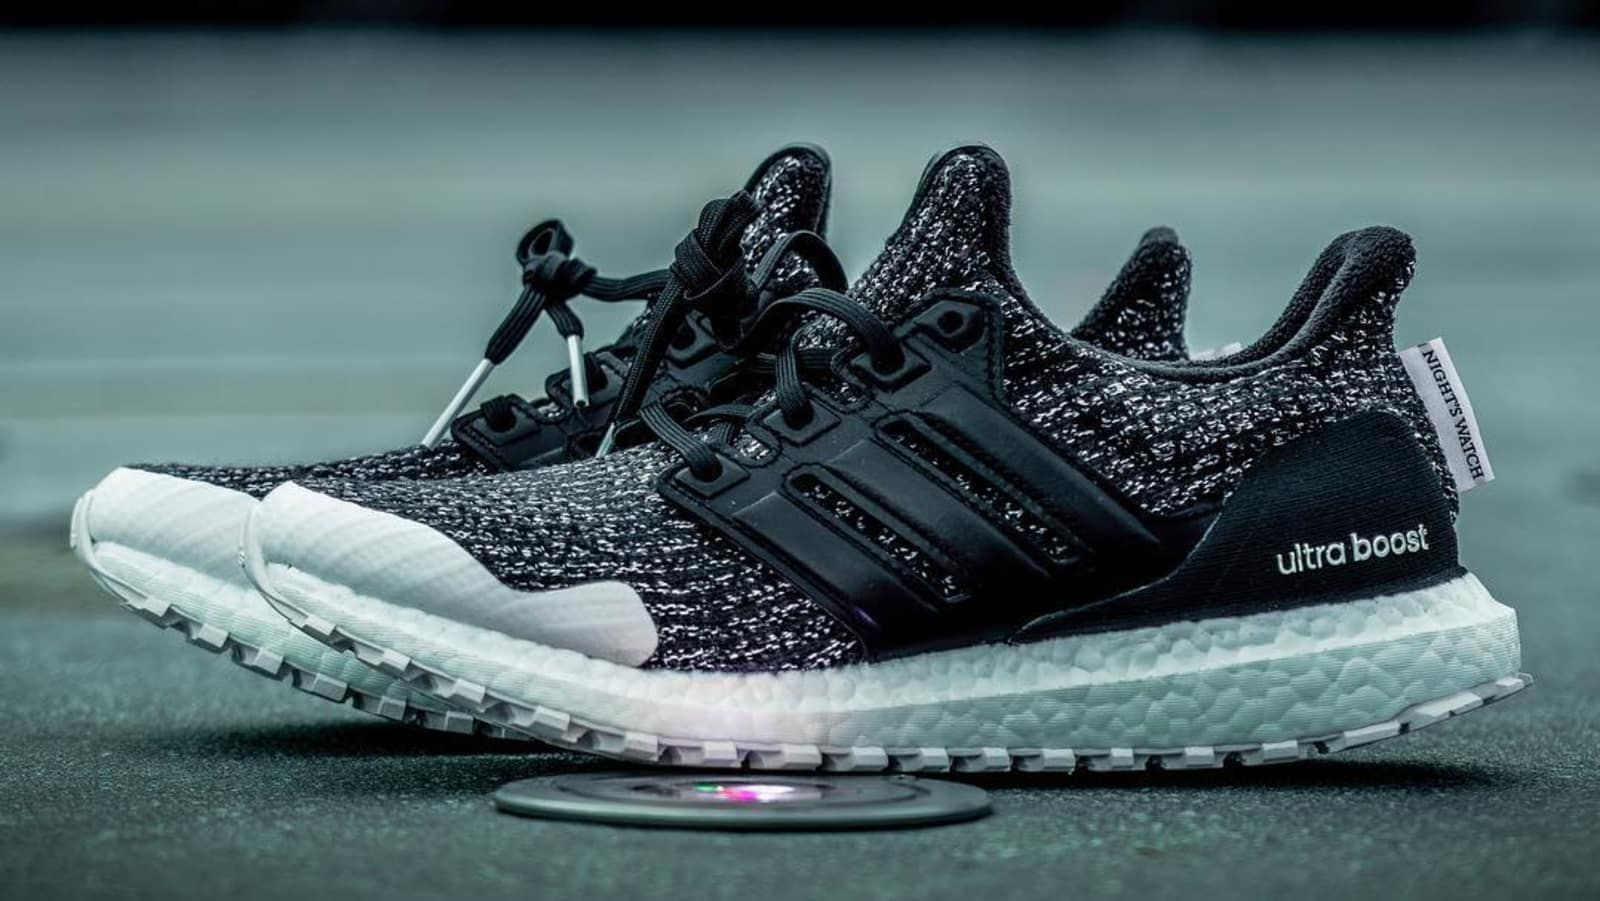 Game of Thrones  x Adidas Ultra Boost  Night s Watch  Release Date ... 7290b1da9